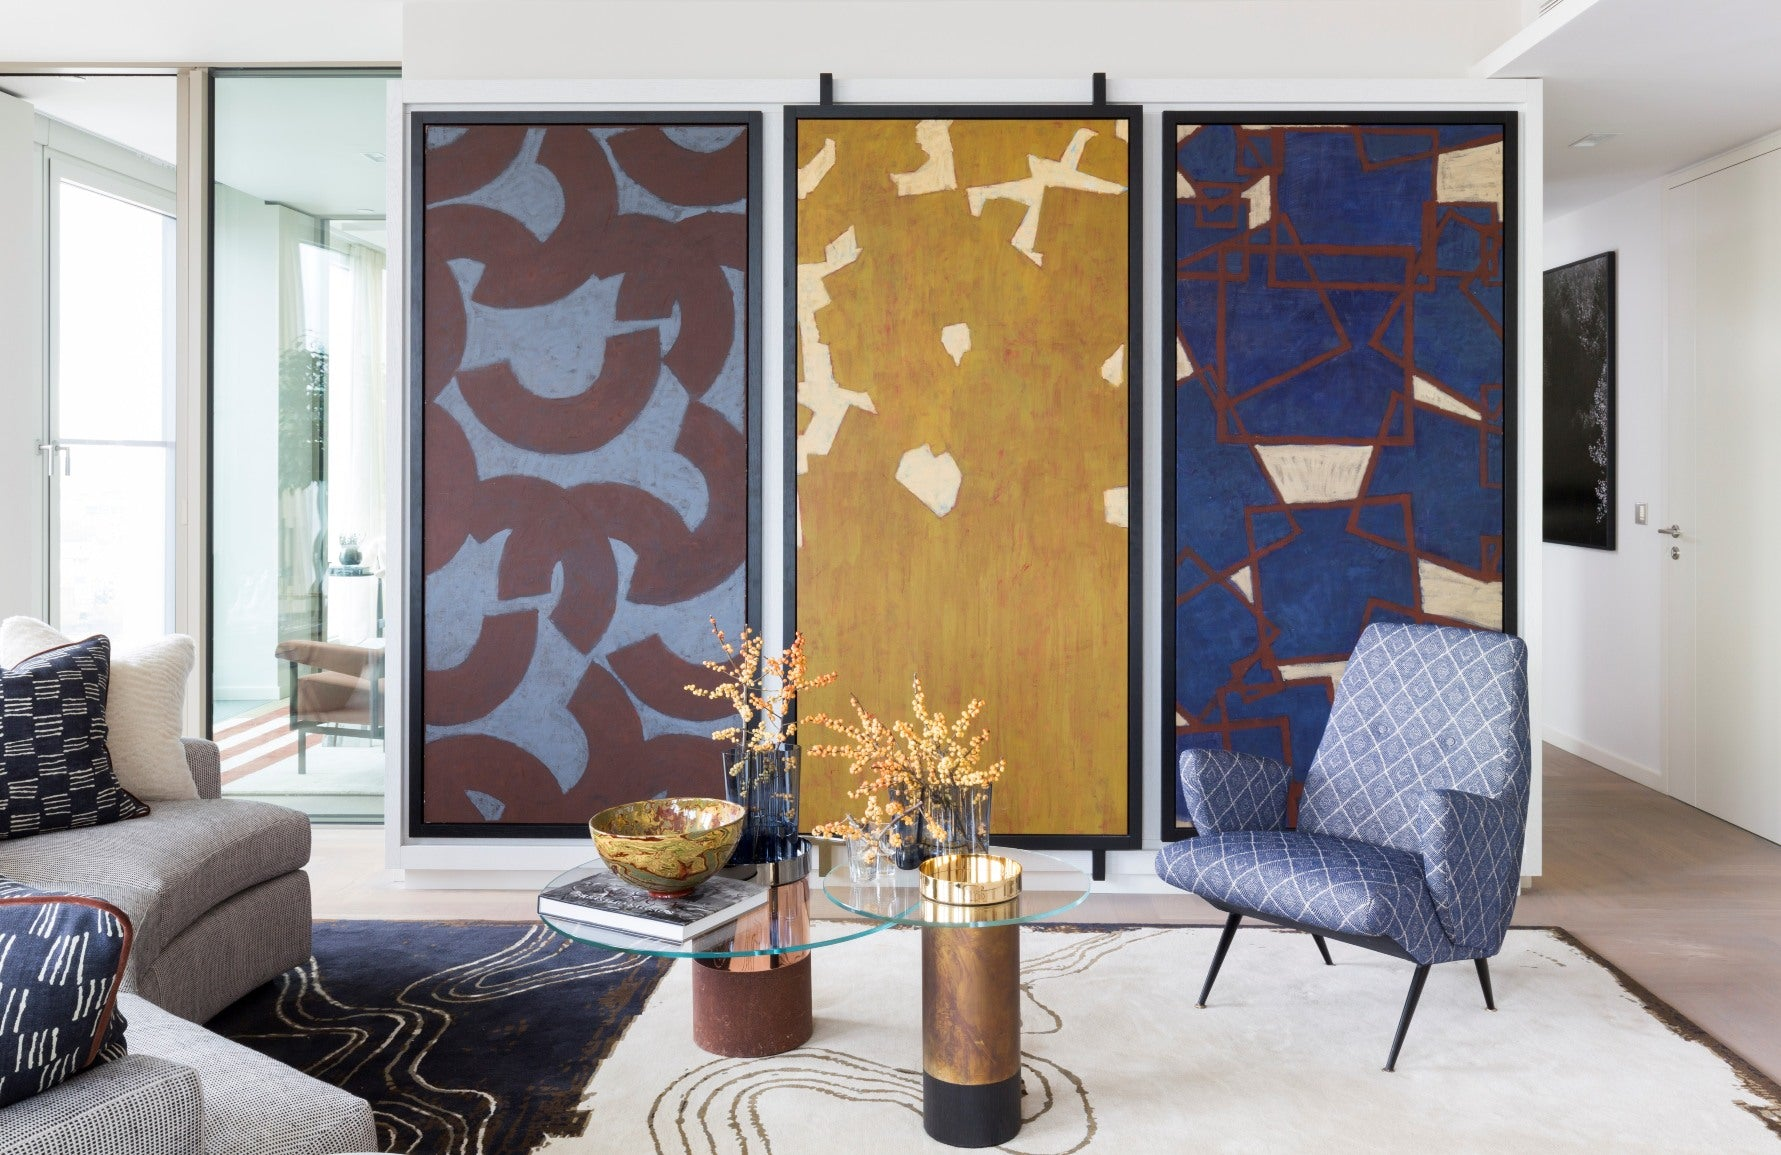 Living Room Wall Decor Ideas How To Display Art Luxdeco